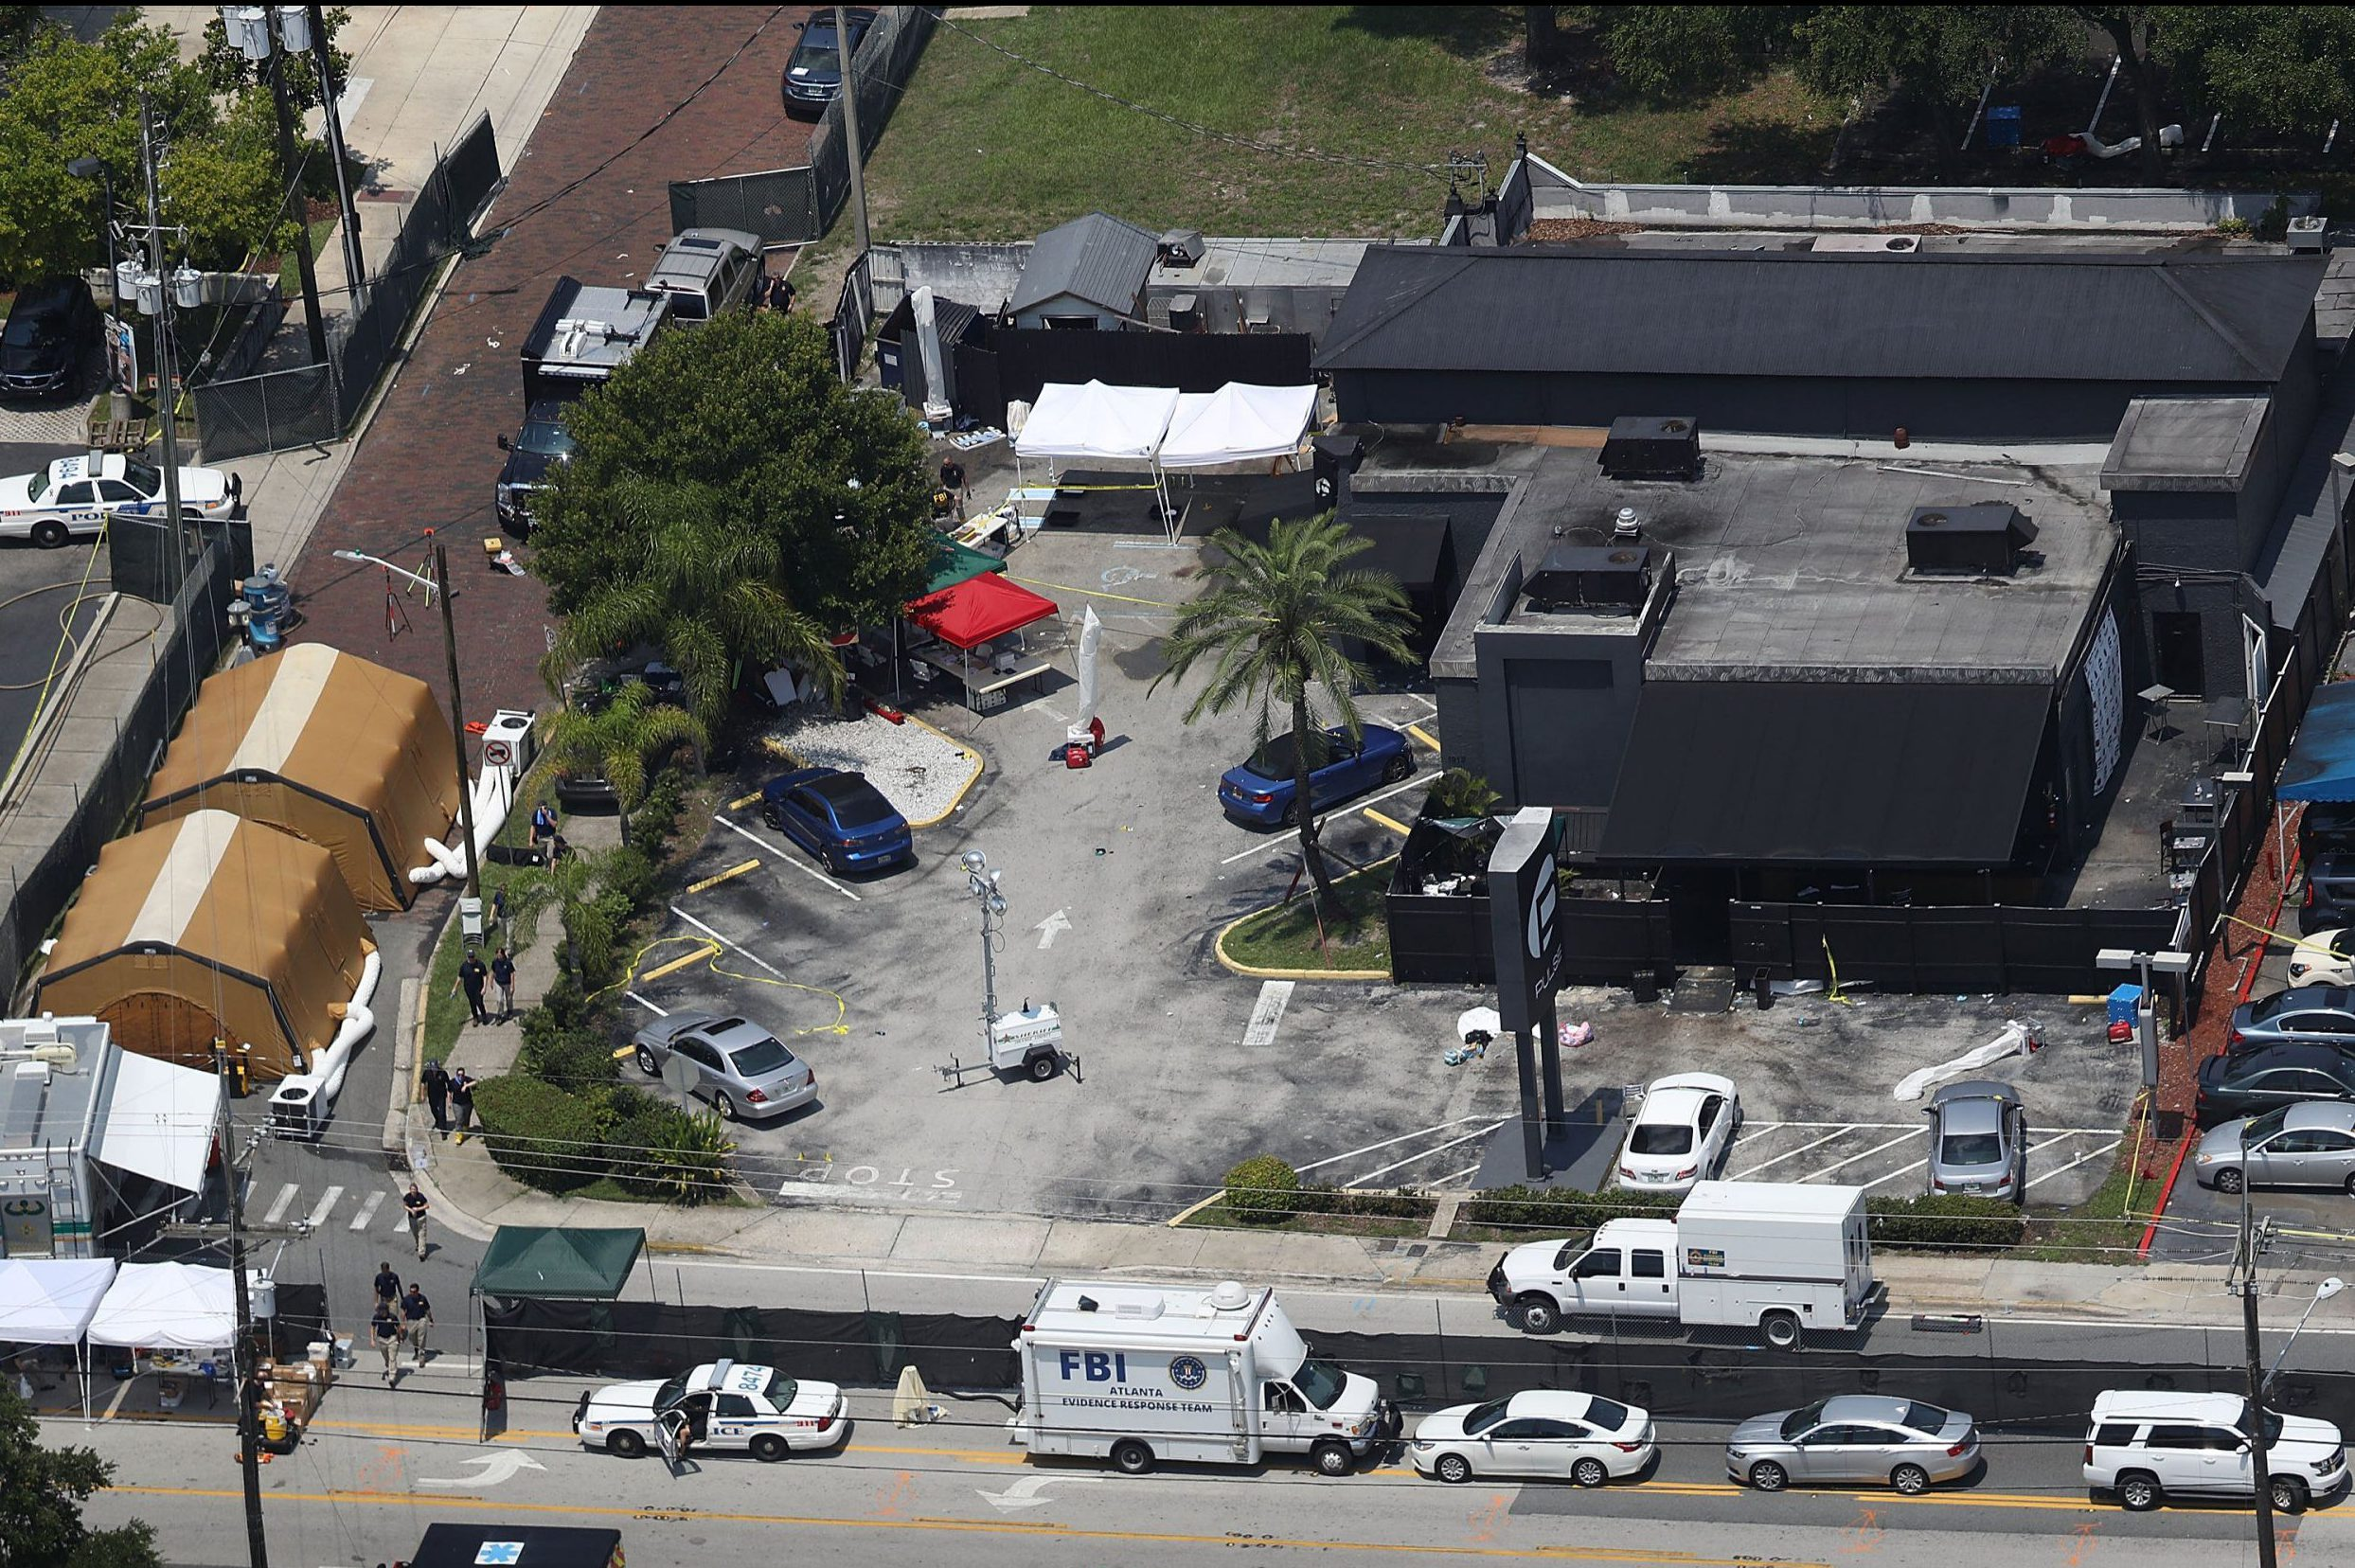 Horrifying CCTV footage shows gunman massacre 49 victims in Pulse nightclub 'minute by minute'